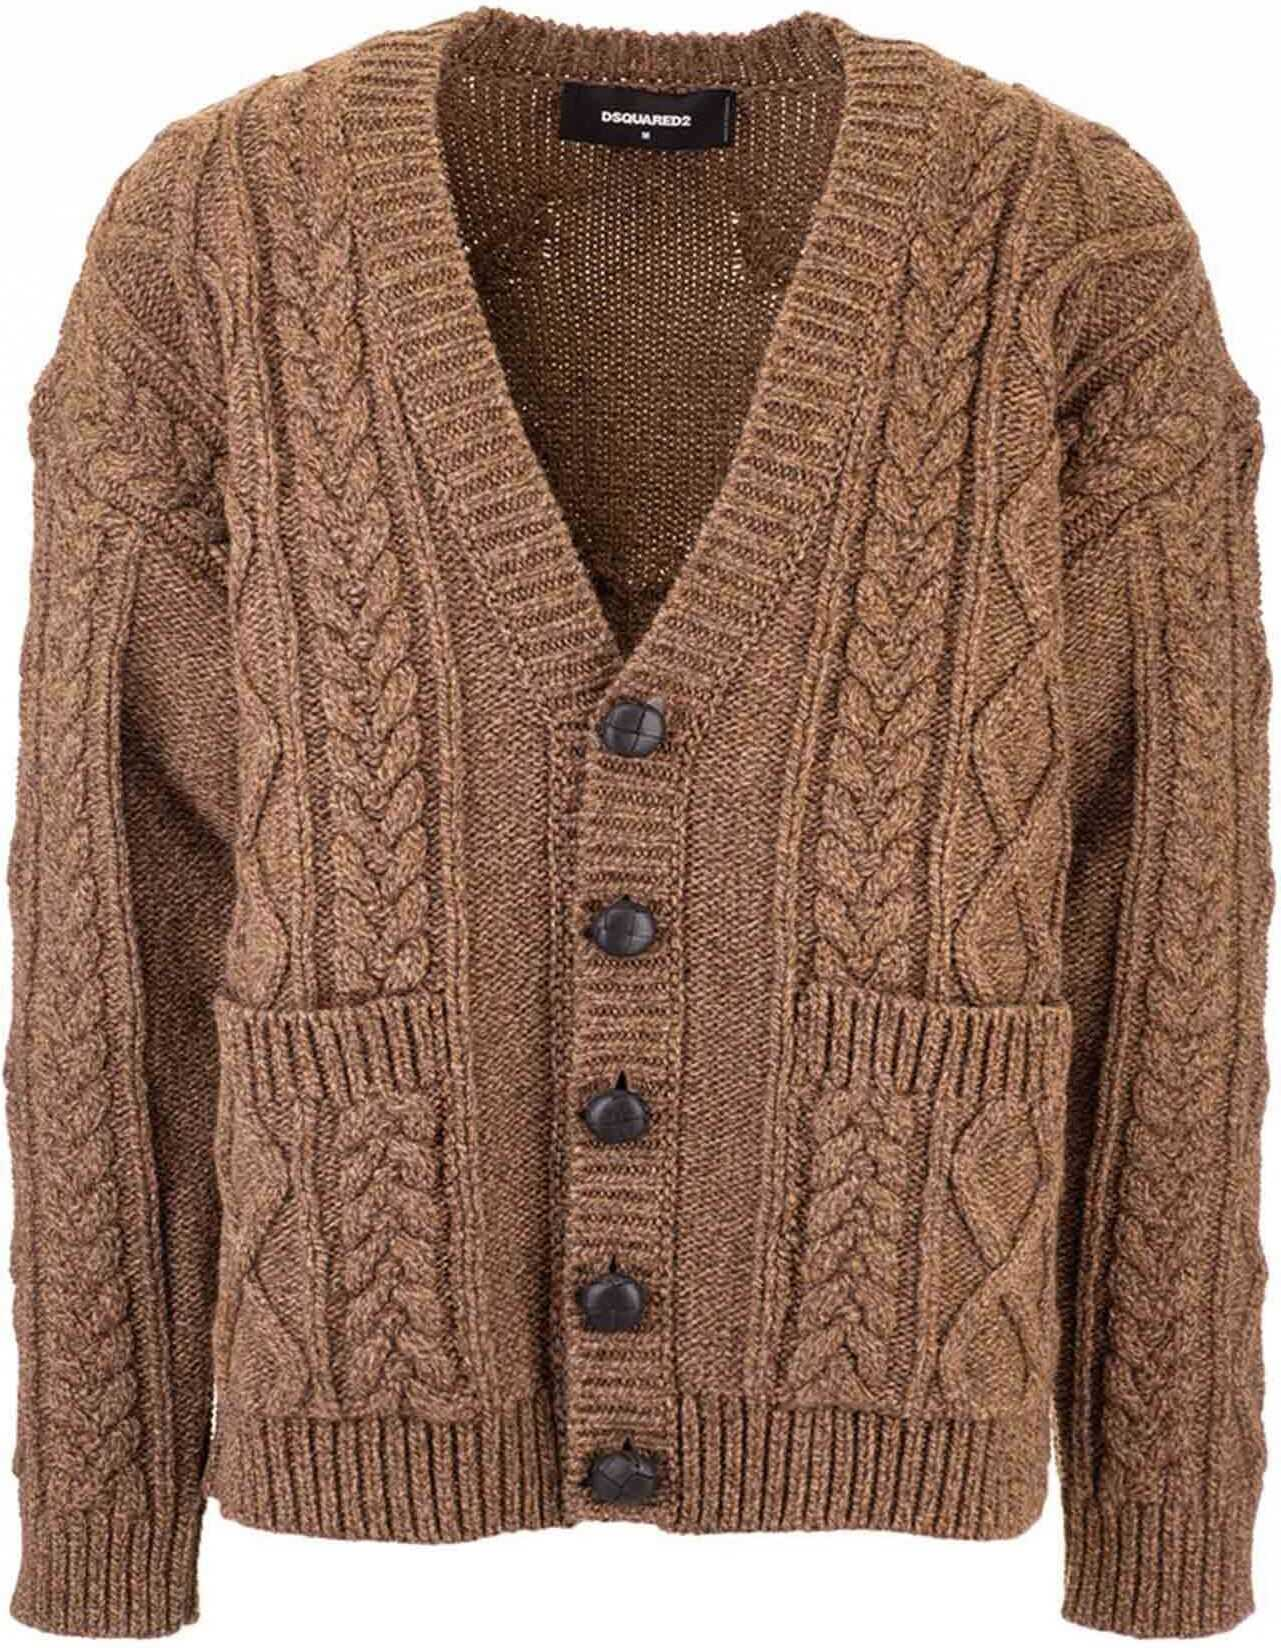 DSQUARED2 Cable Knit Cardigan In Brown Brown imagine